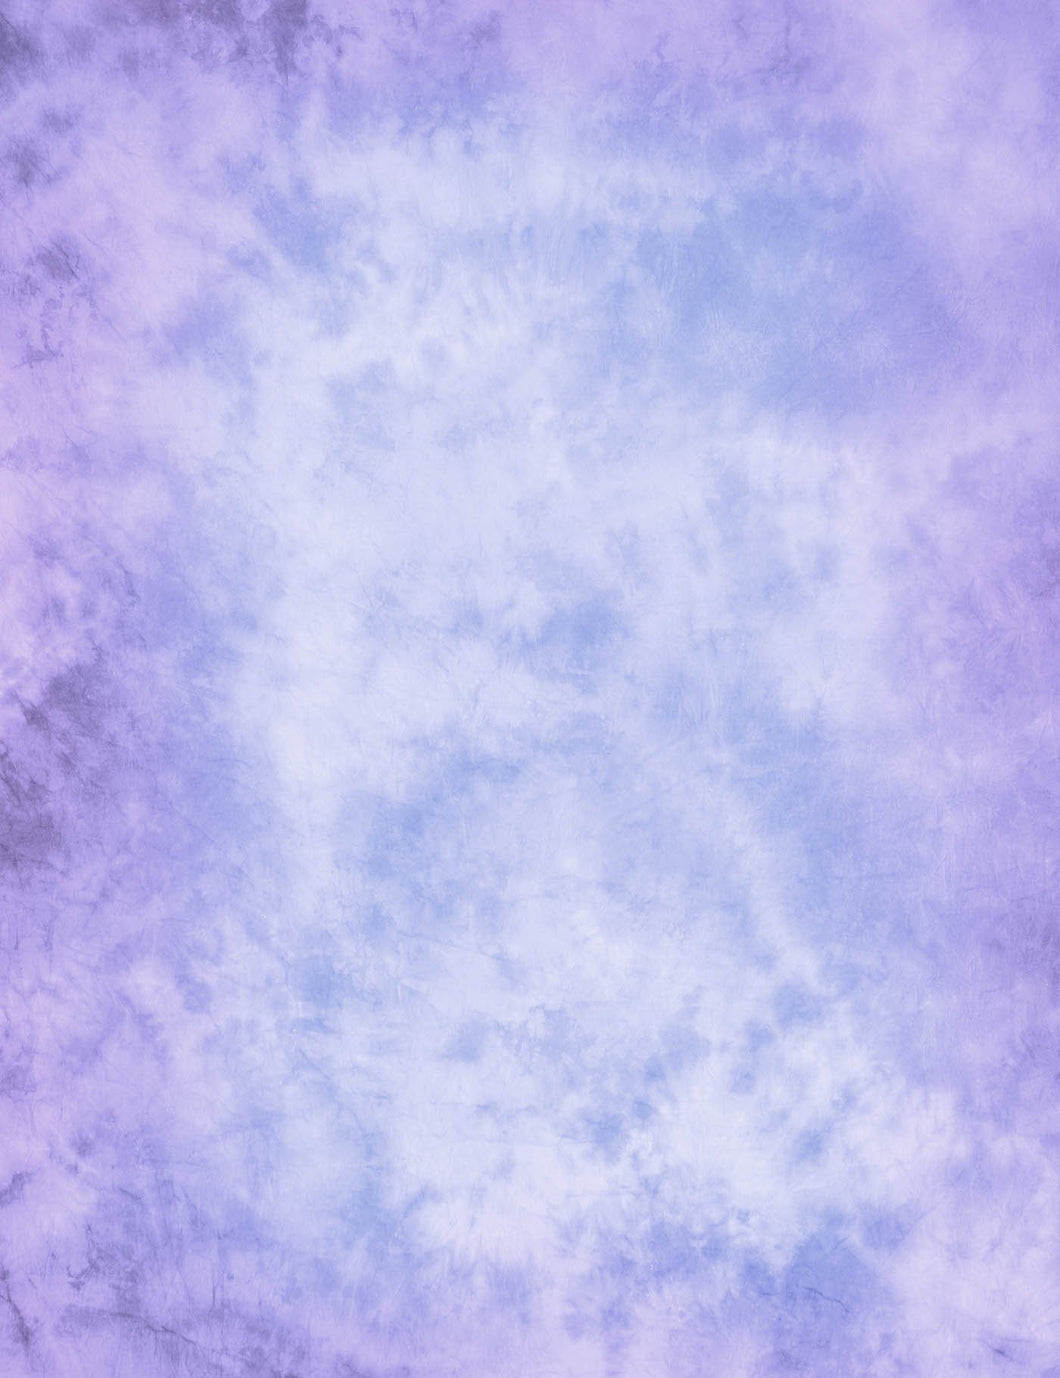 Abstract Purple And Little Blue Photography Backdrop J-0643 - Shop Backdrop